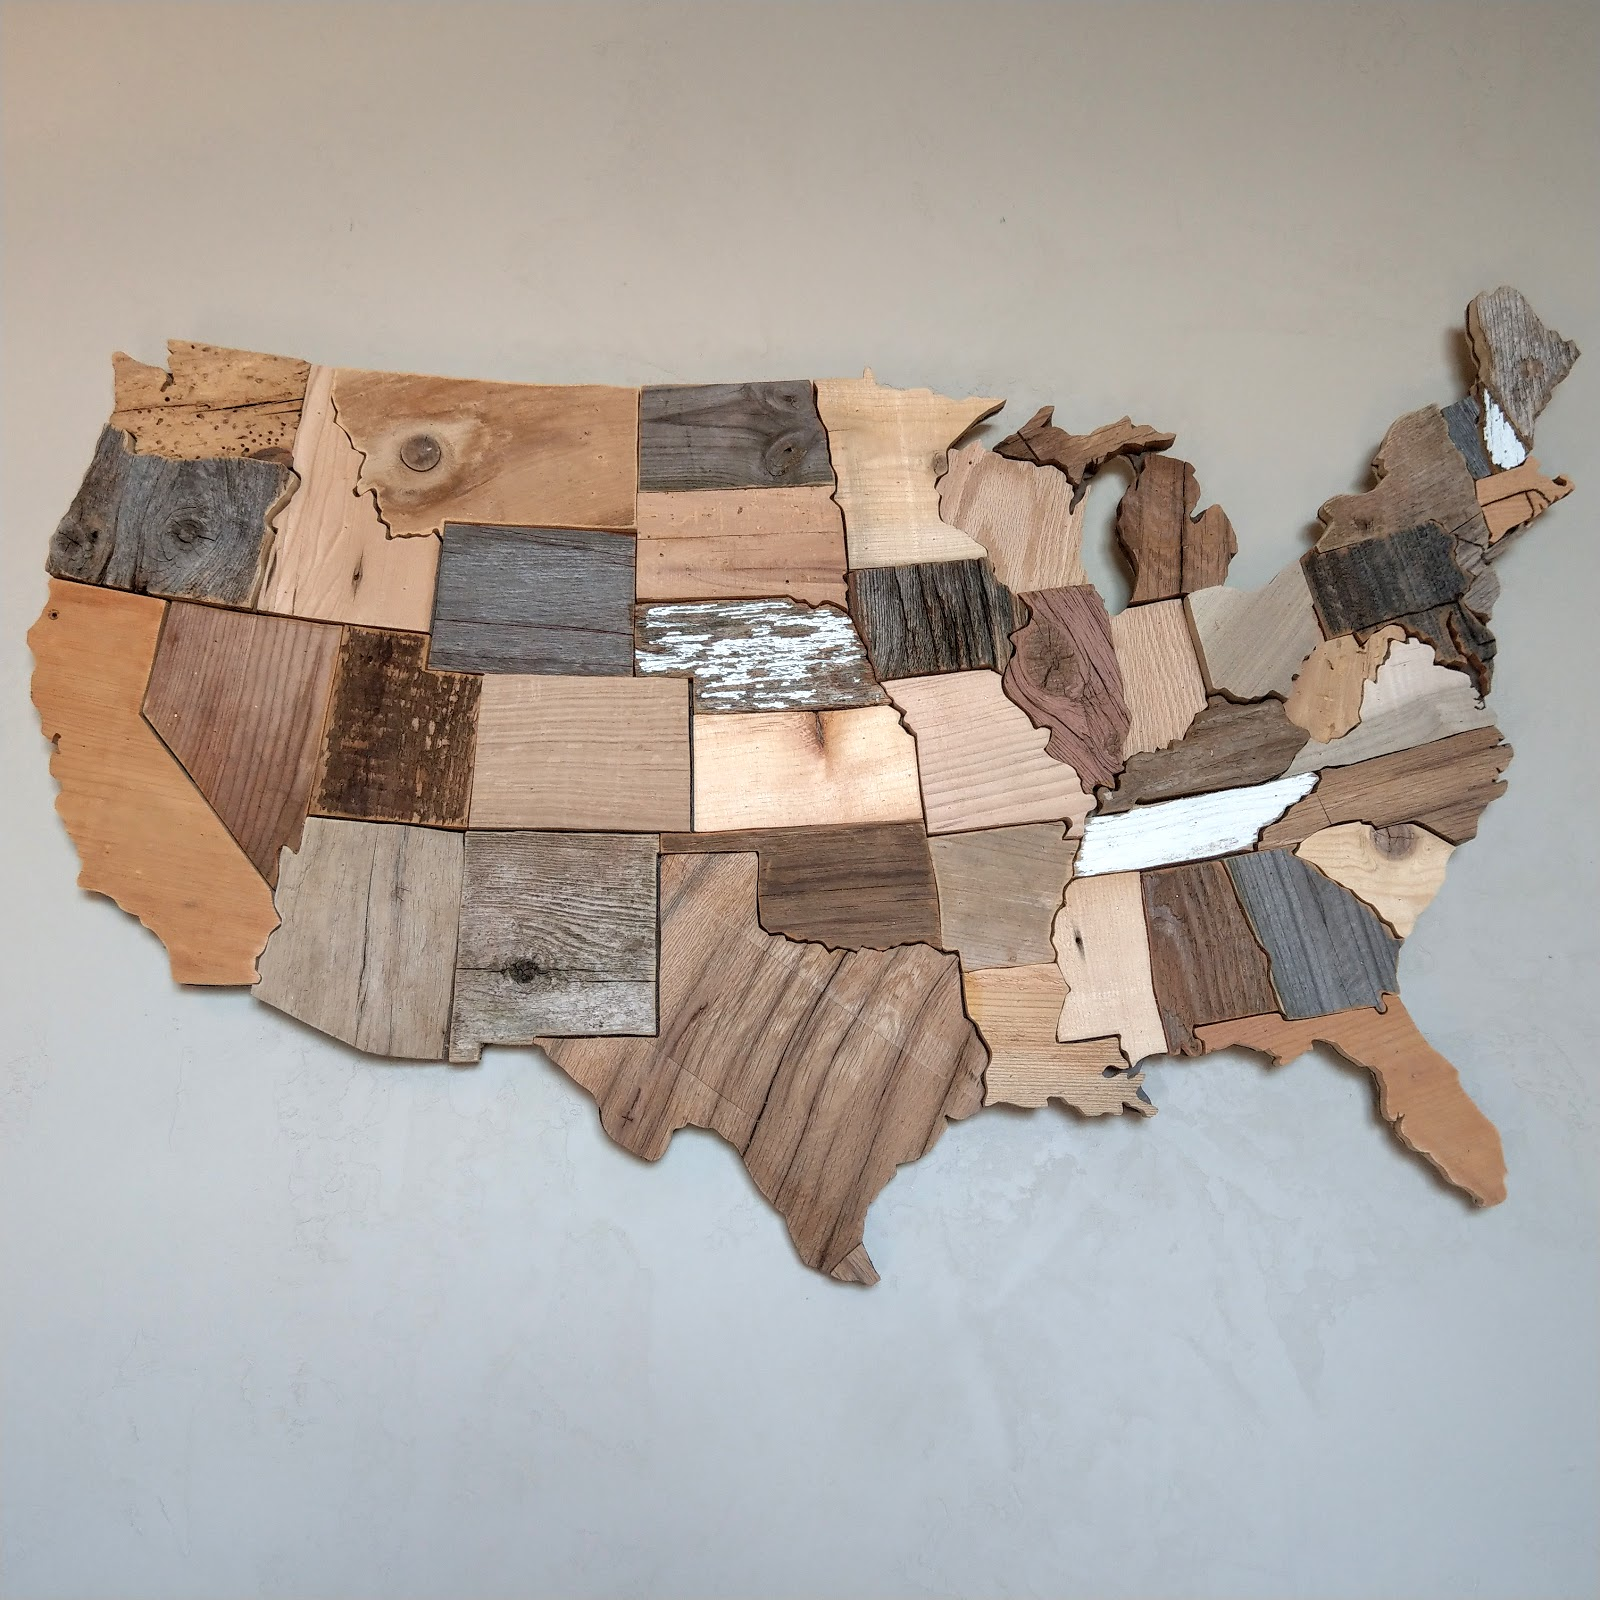 World map art us map art reclaimed wood art by susan marie may us map art made from pallet barn and other reclaimed woods by susan marie may gumiabroncs Choice Image